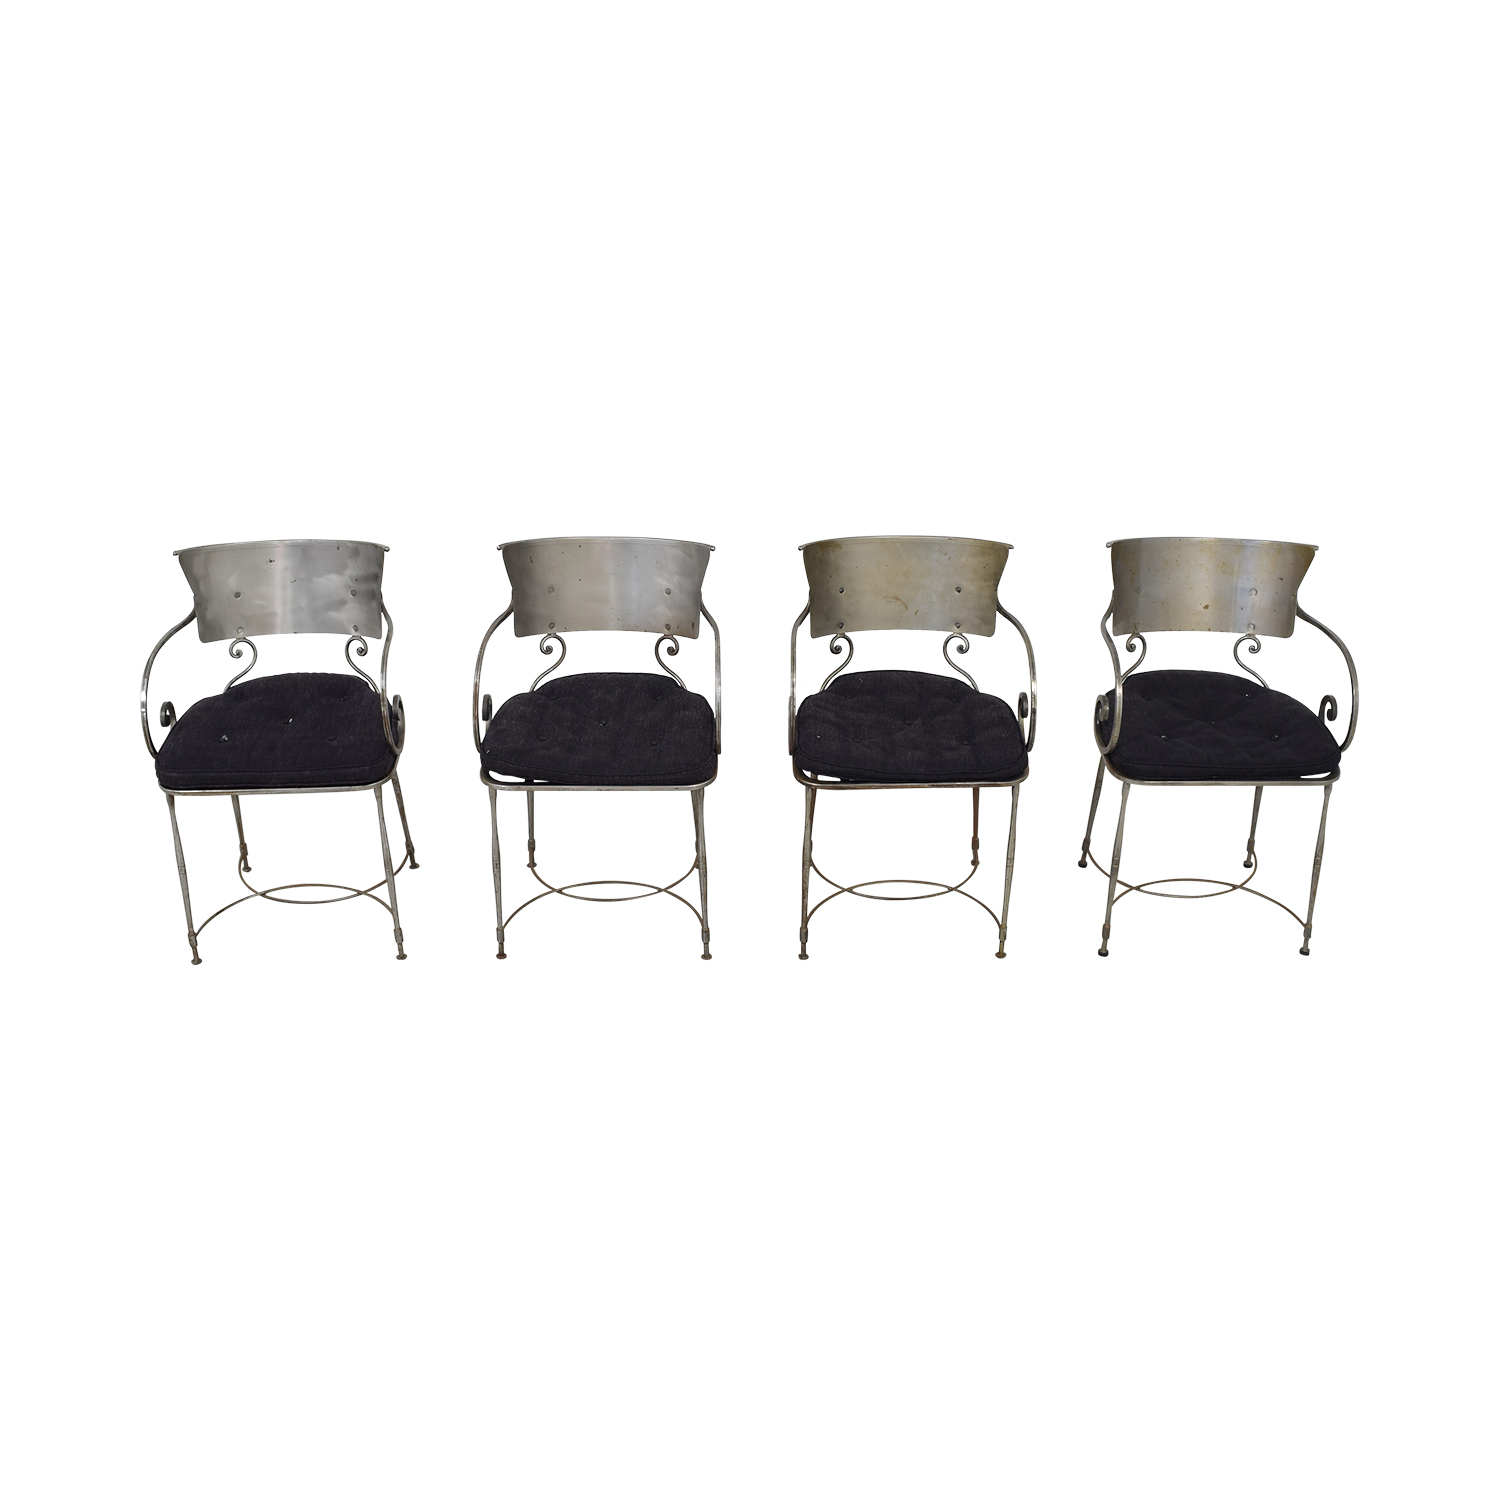 Bloomingdale's Bloomingdale's Four Metal Dining Chairs Chairs